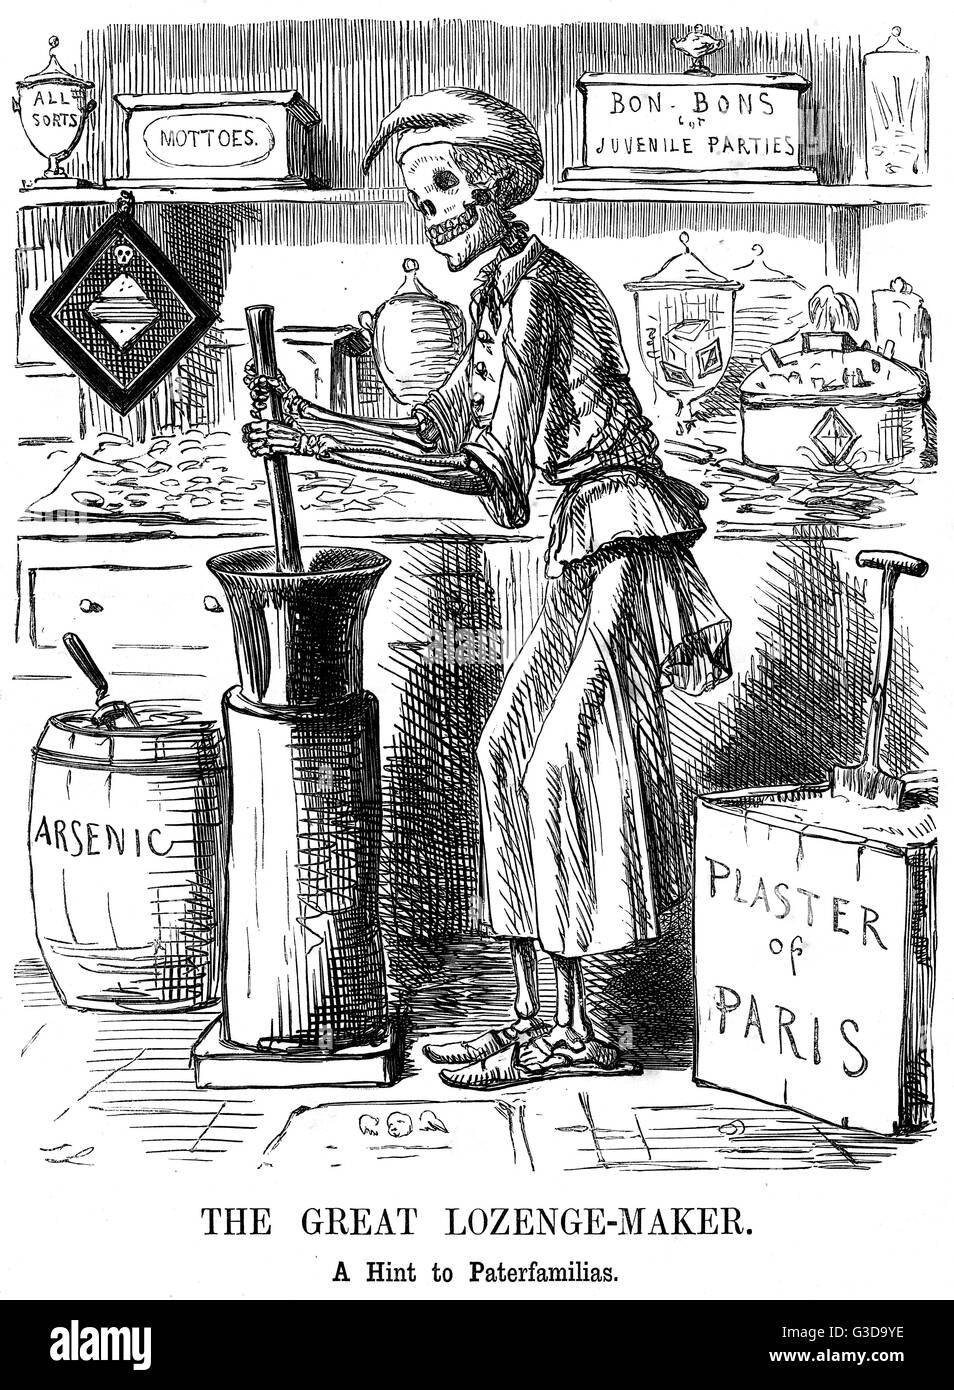 The Great Lozenge-Maker - a hint to paterfamilias.  Cartoon by John Leech in Punch alluding to the Bradford Sweet - Stock Image